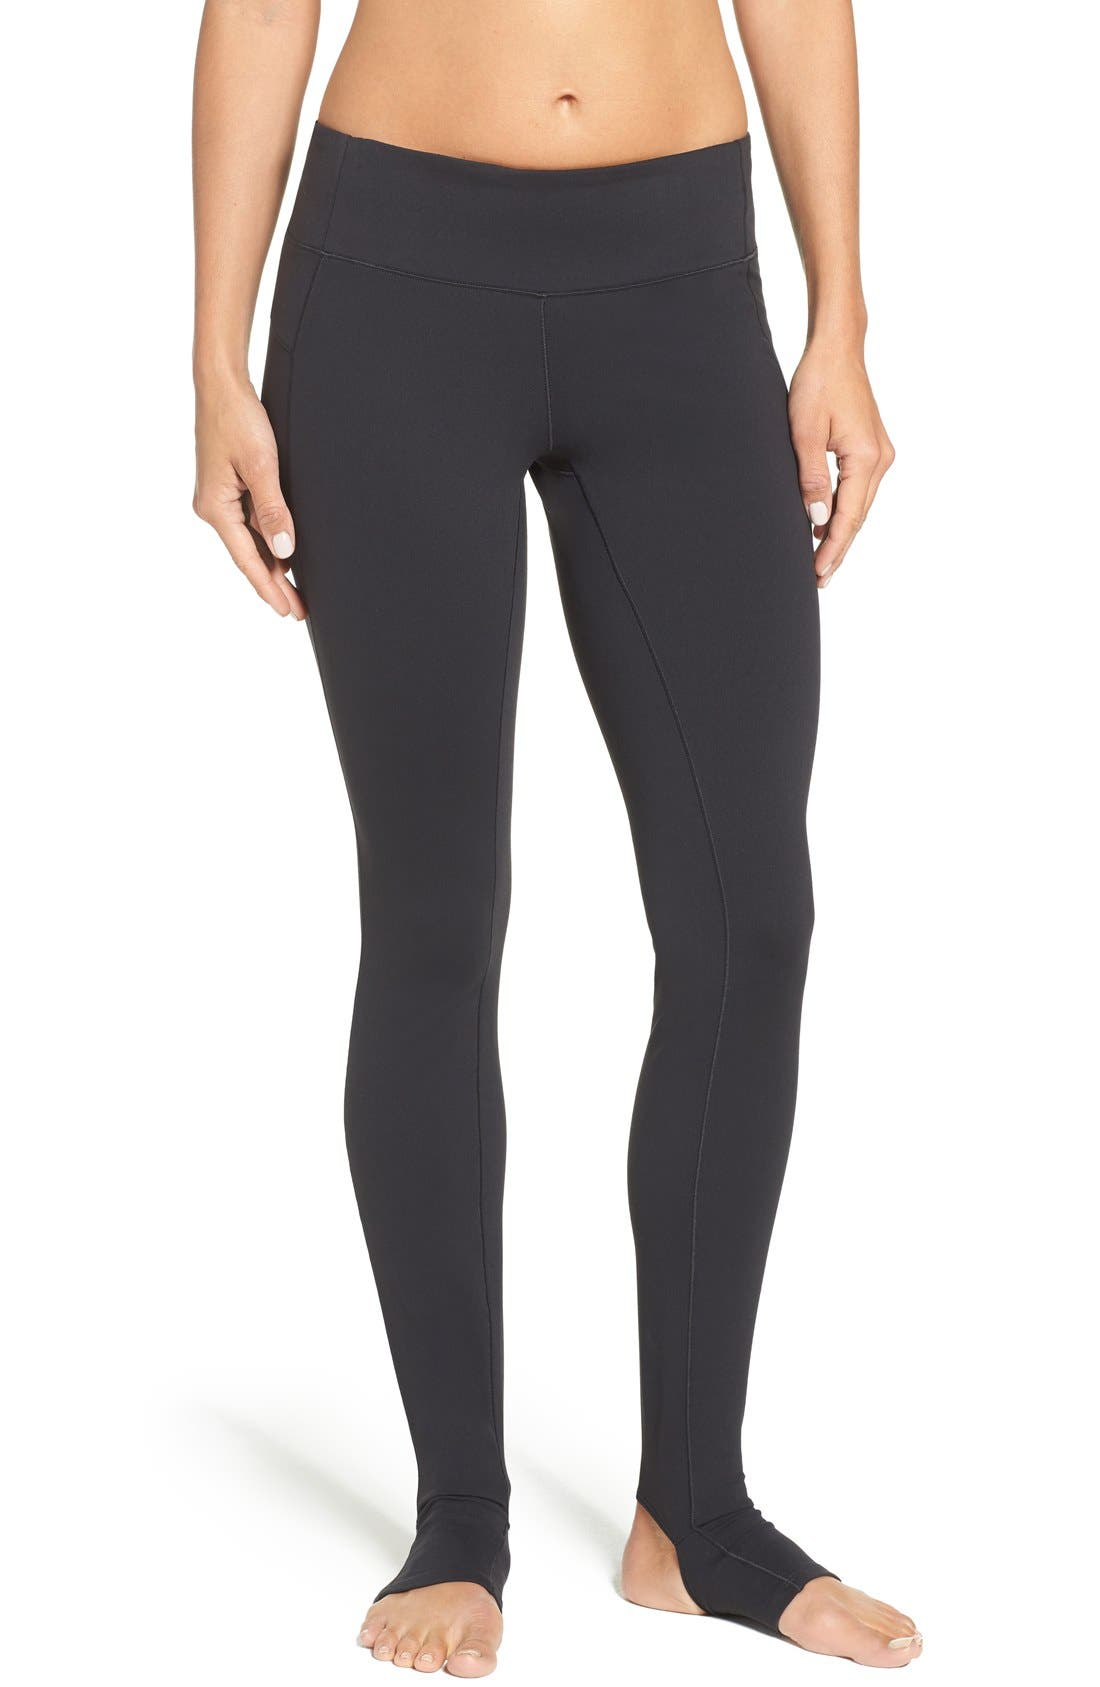 New Balance Foiled Stirrup Tights